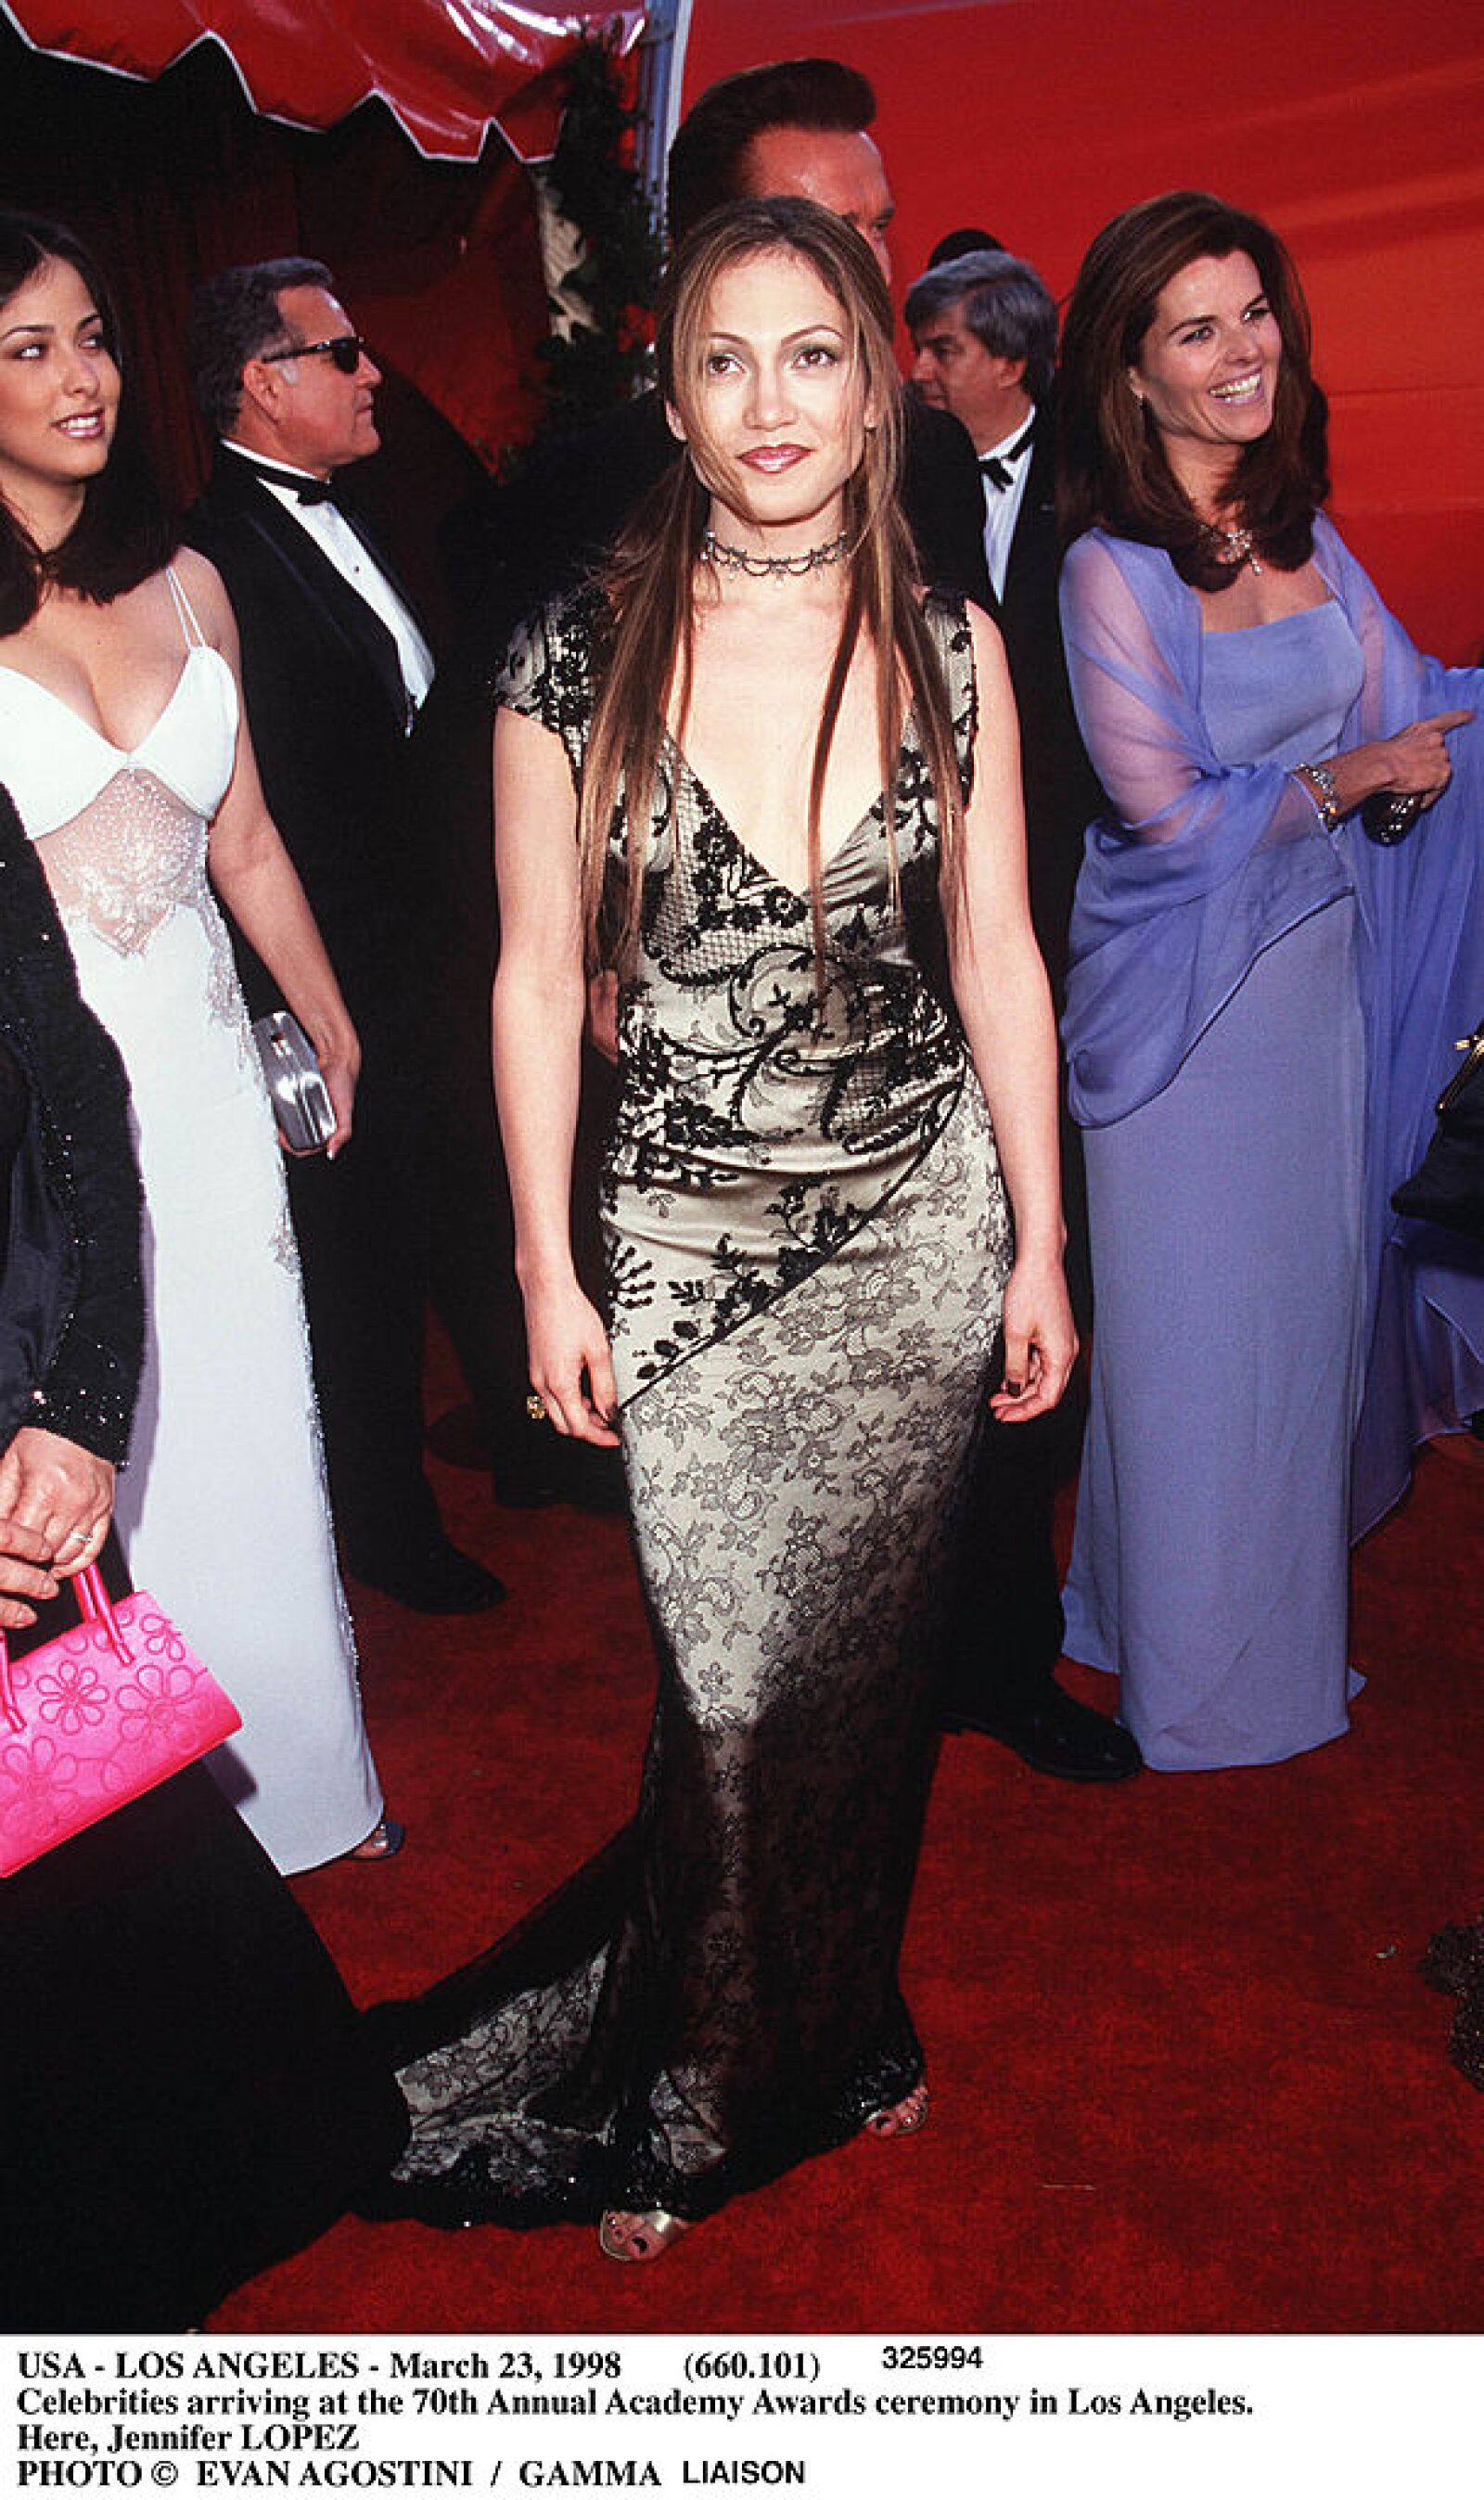 Los Angeles March 23 1998 -660 101 Celebrities Arriving At The 70Th Annual Academy Awards